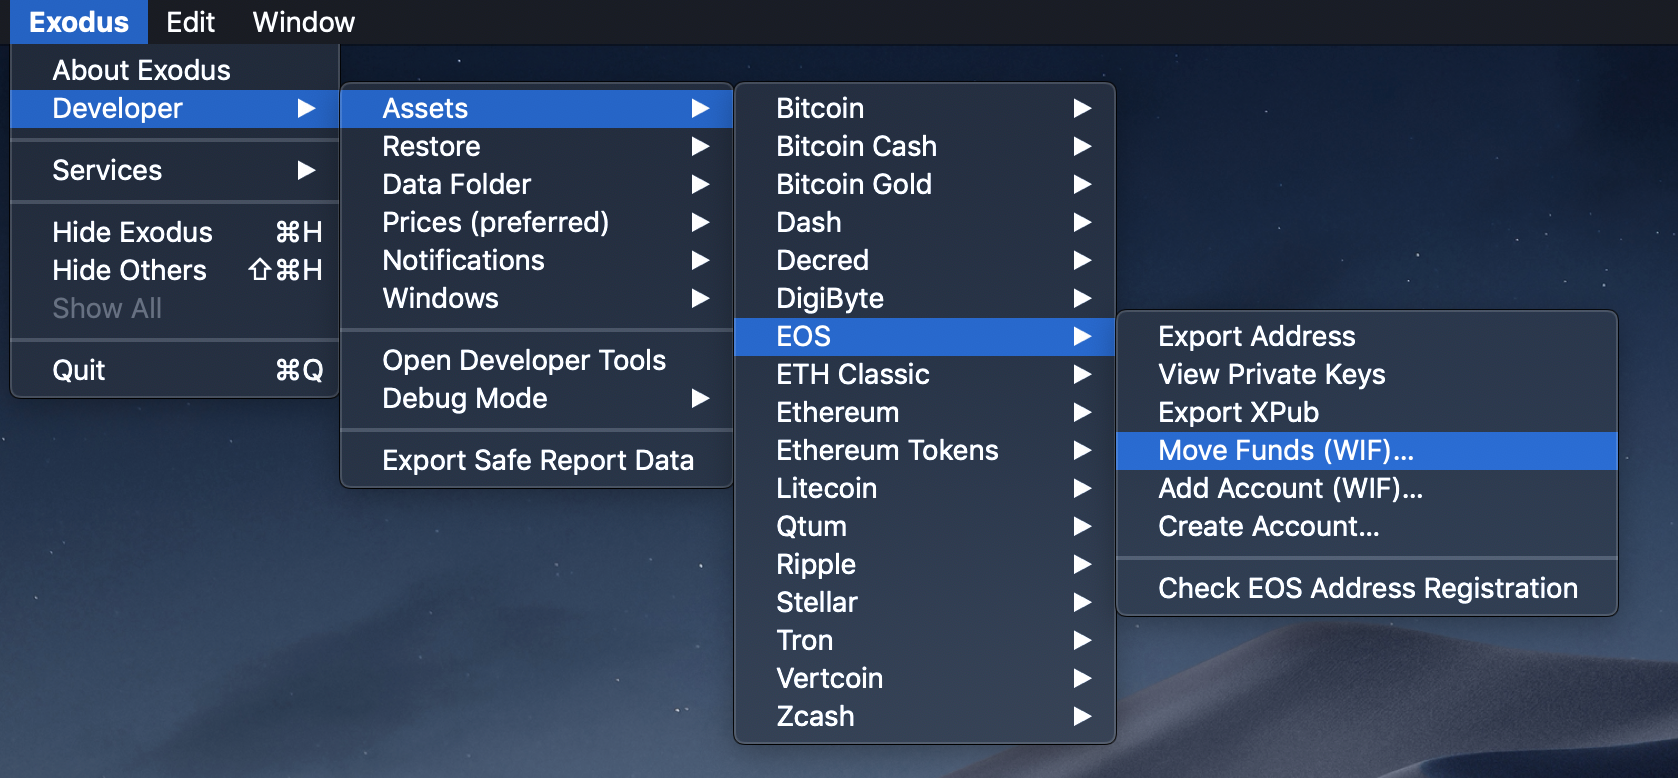 EOS: Developer Menu Move Funds (WIF) - Exodus Support